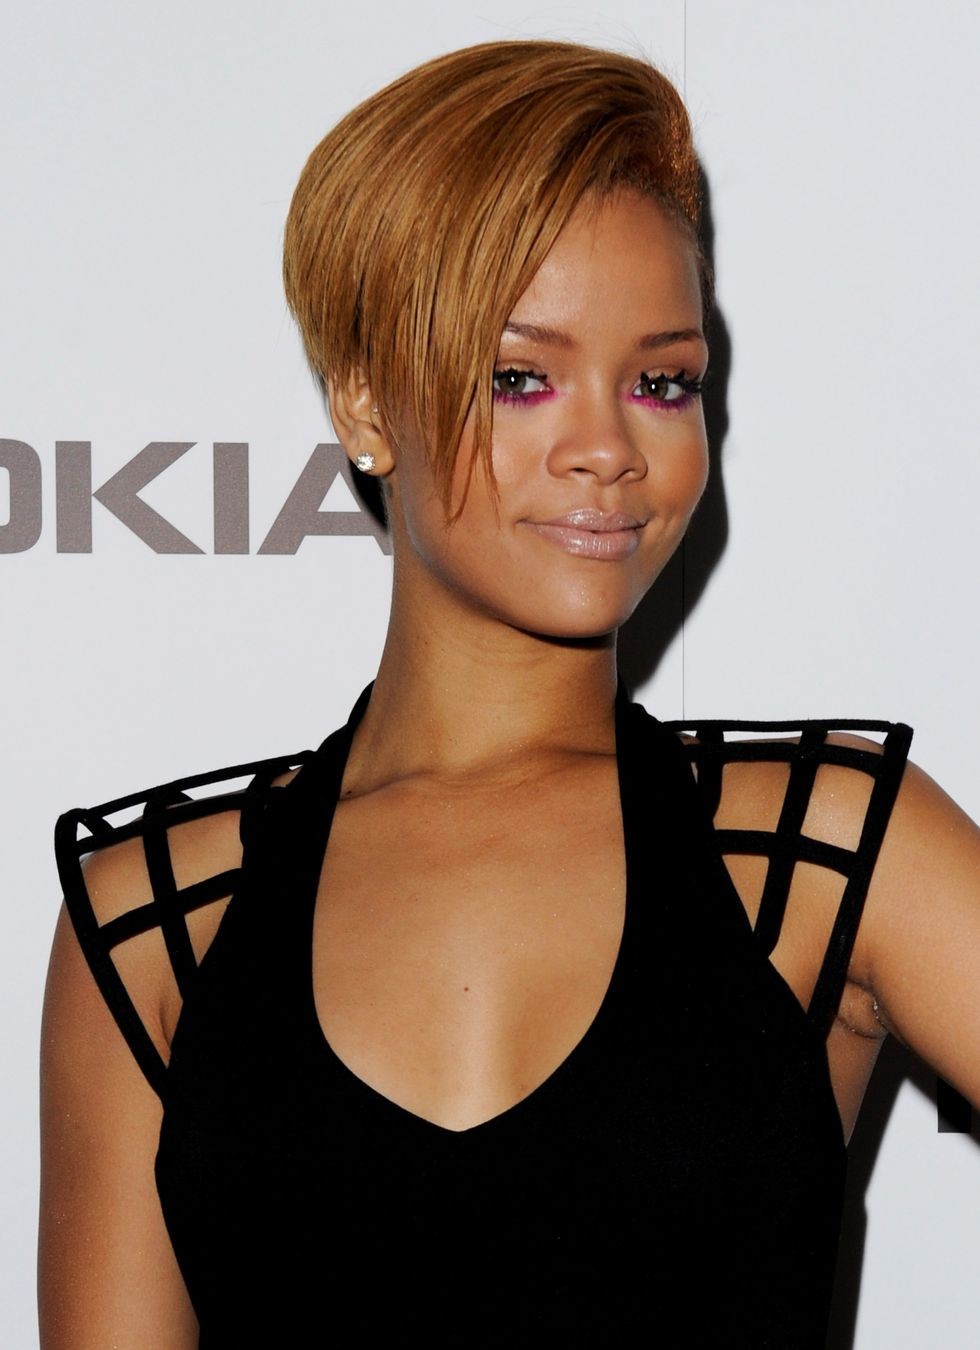 rihanna-nokia-x6-launch-in-london-01